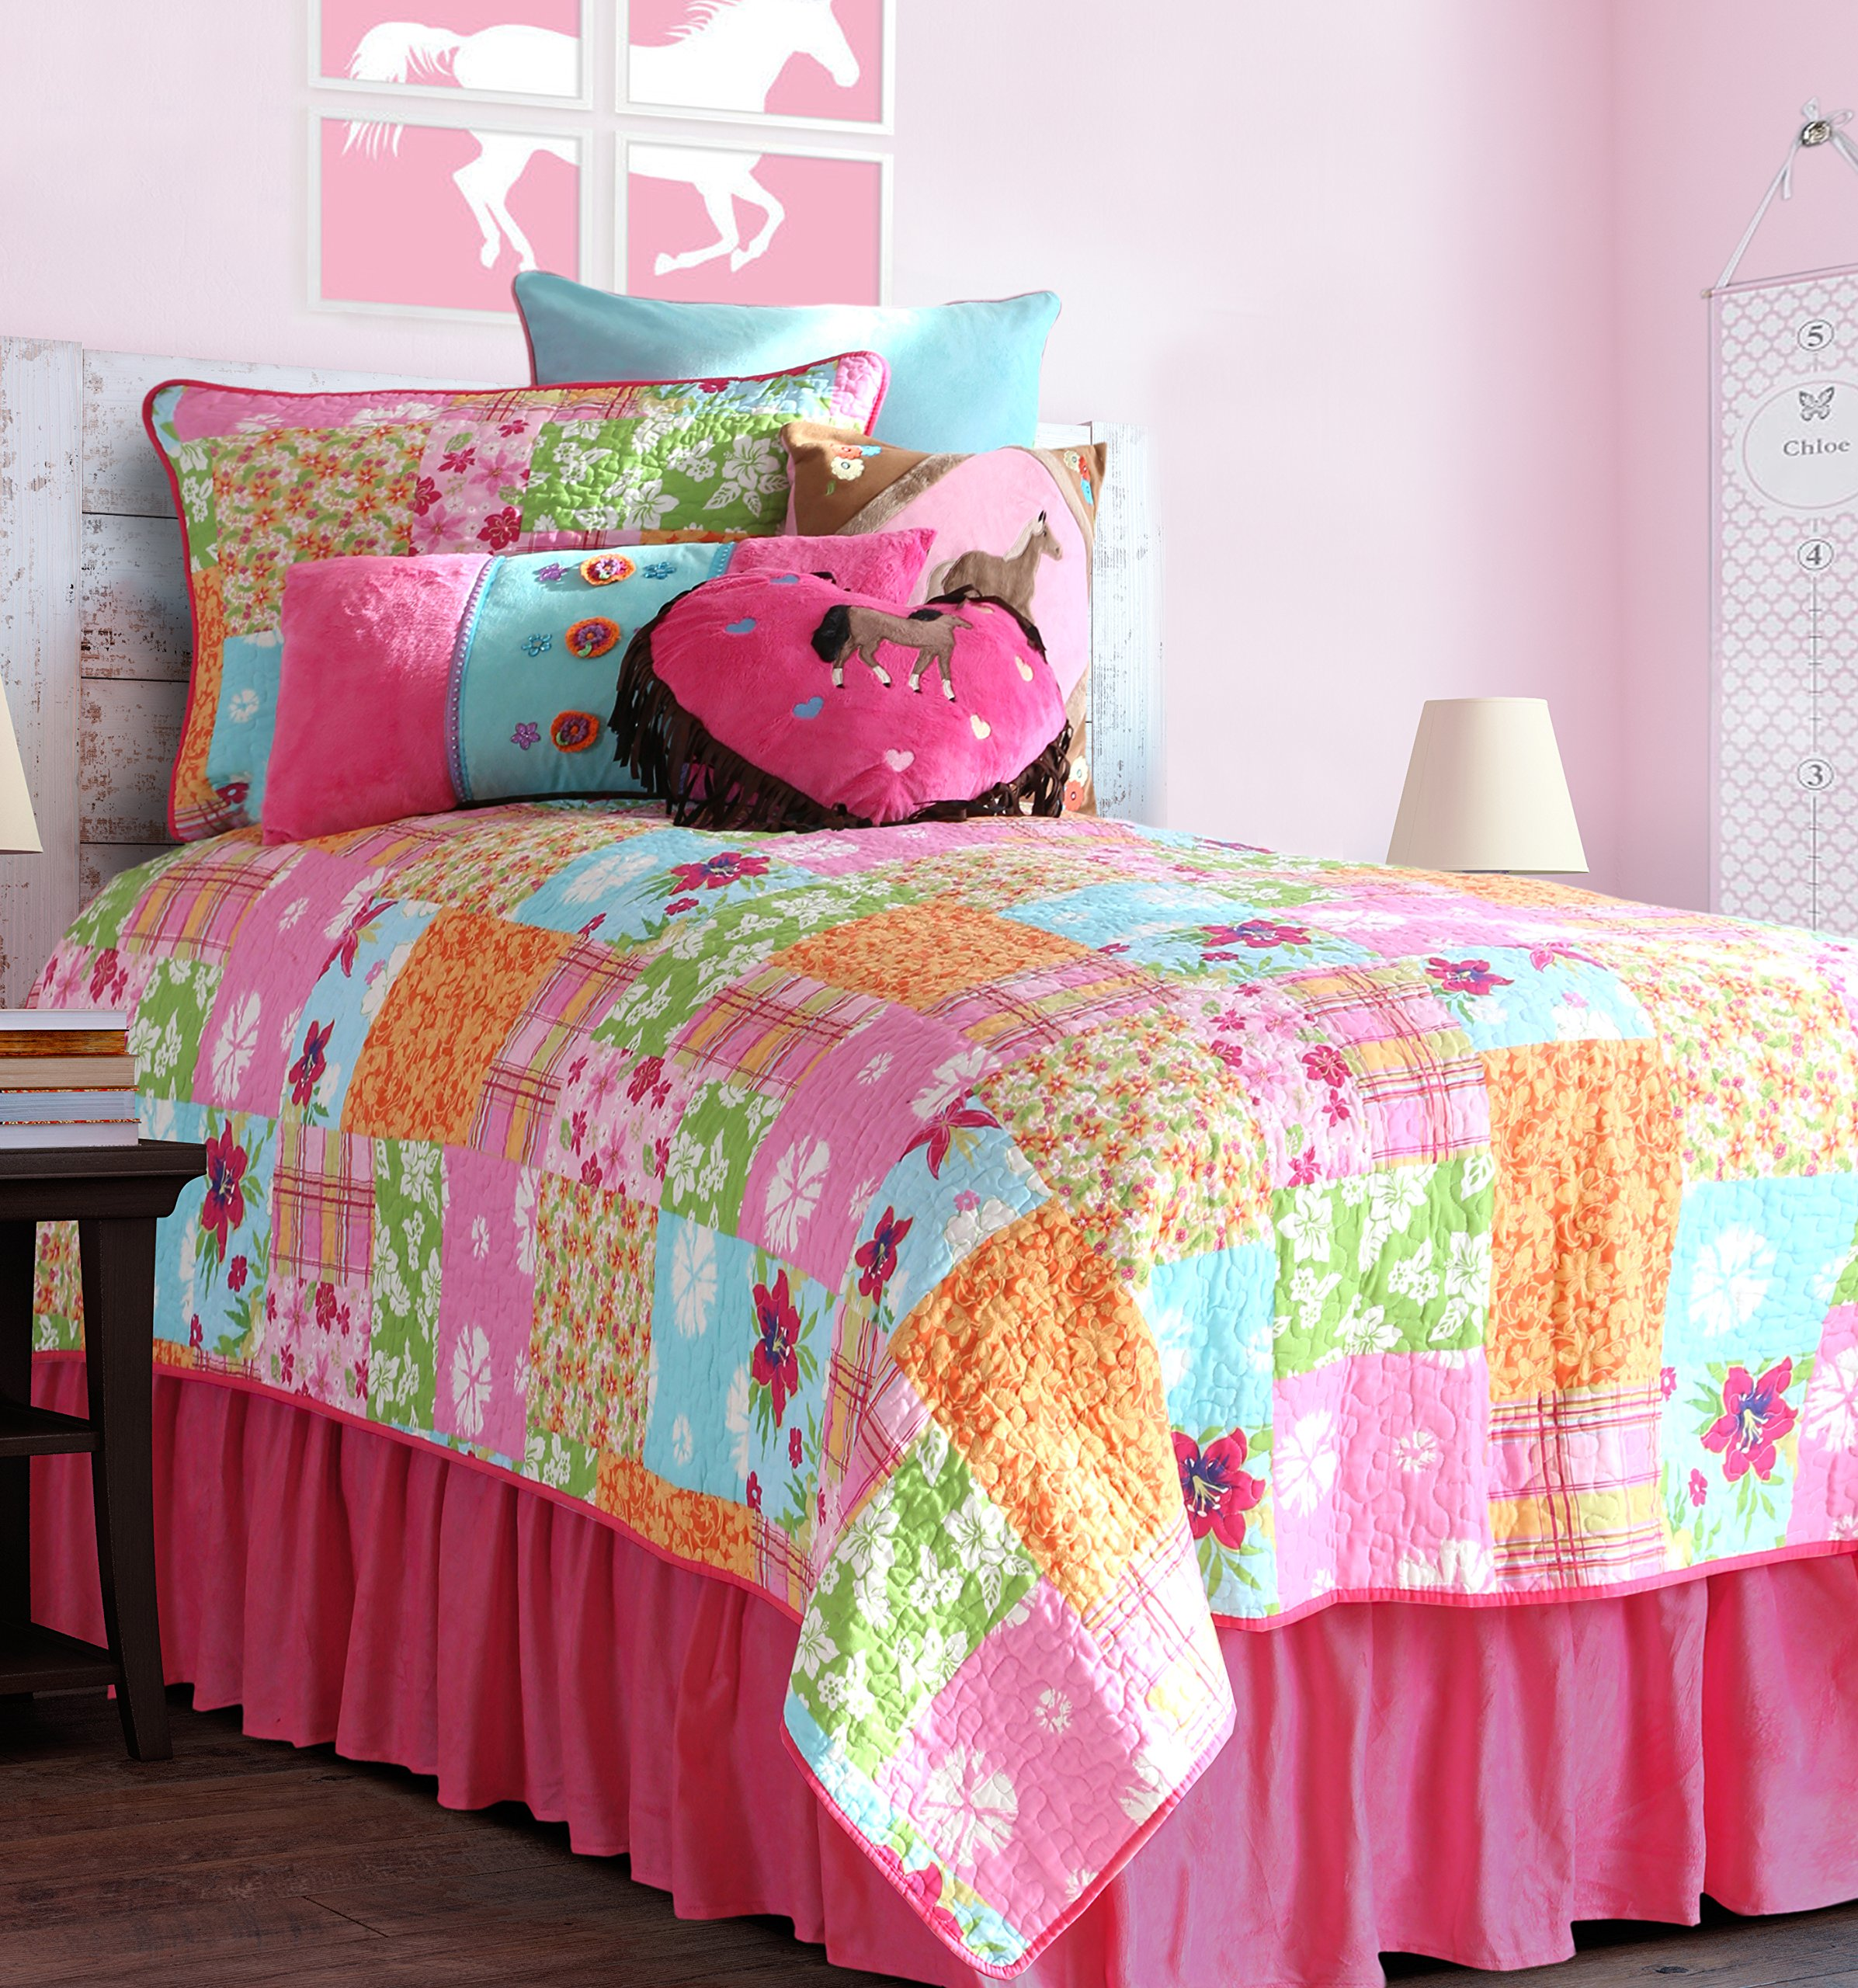 Carstens 100% Cotton Patchwork Country Flower Girls Quilt, Full/Queen